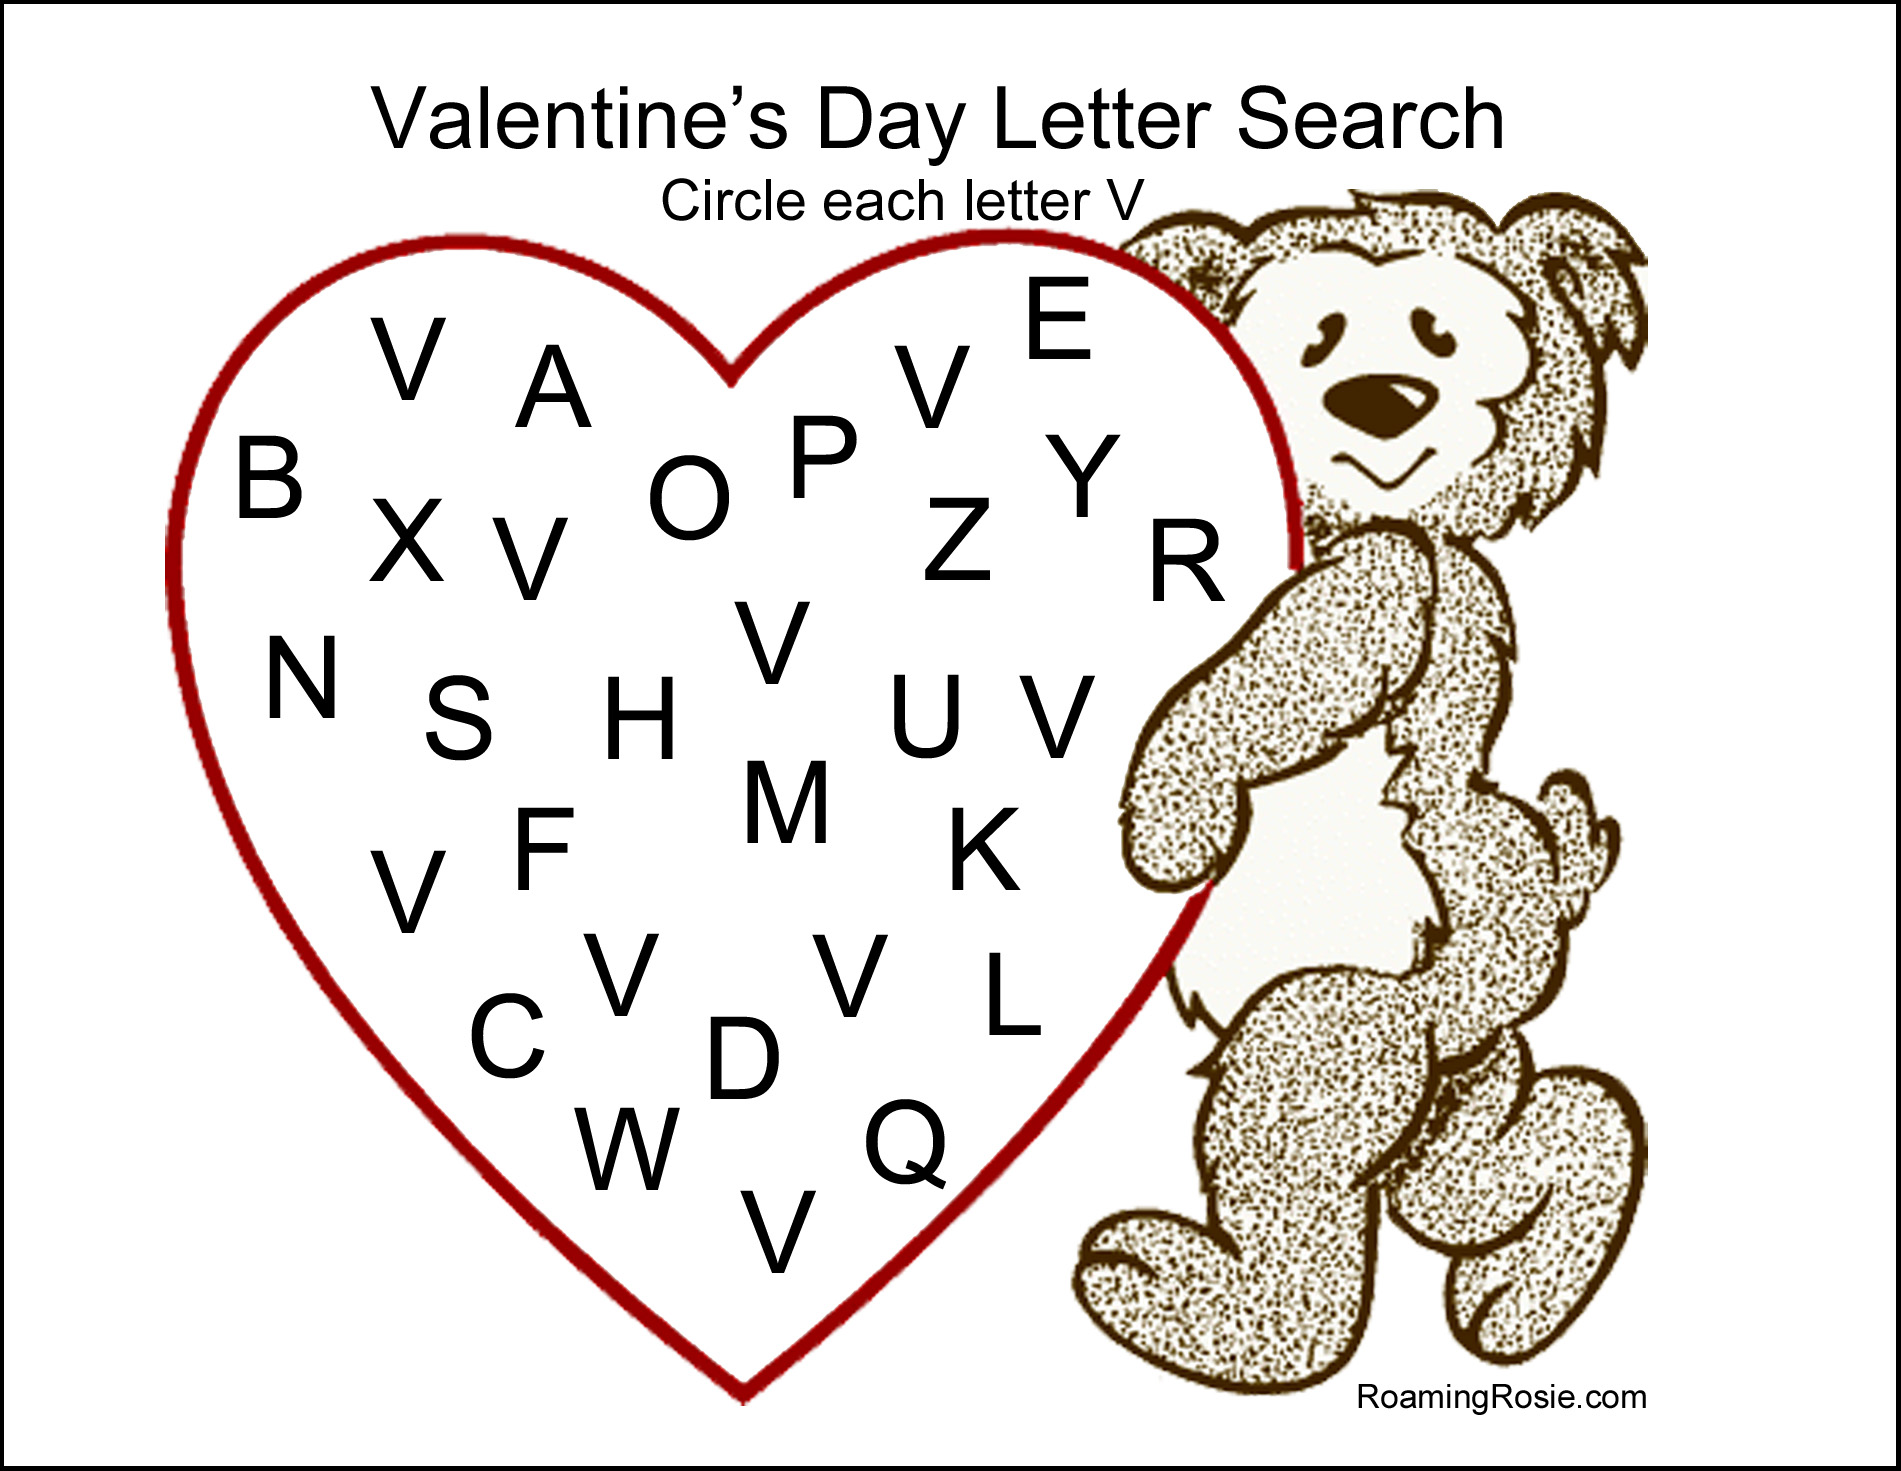 Valentine\'s Day Letter Search FREE Printable Worksheet | Roaming Rosie